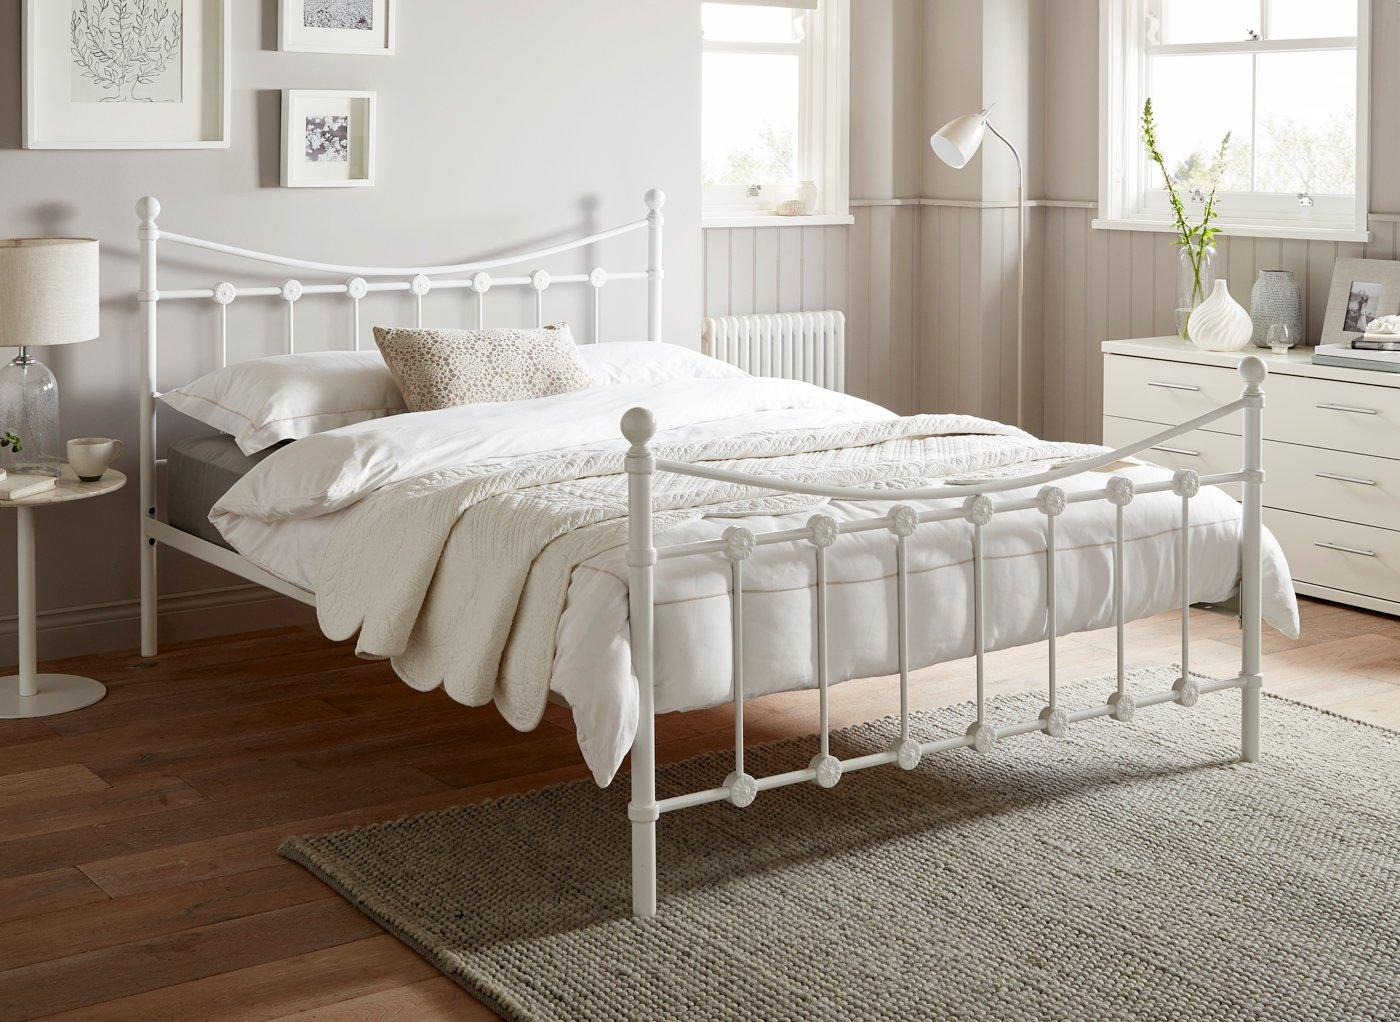 Ava Metal Bed Frame | Dreams